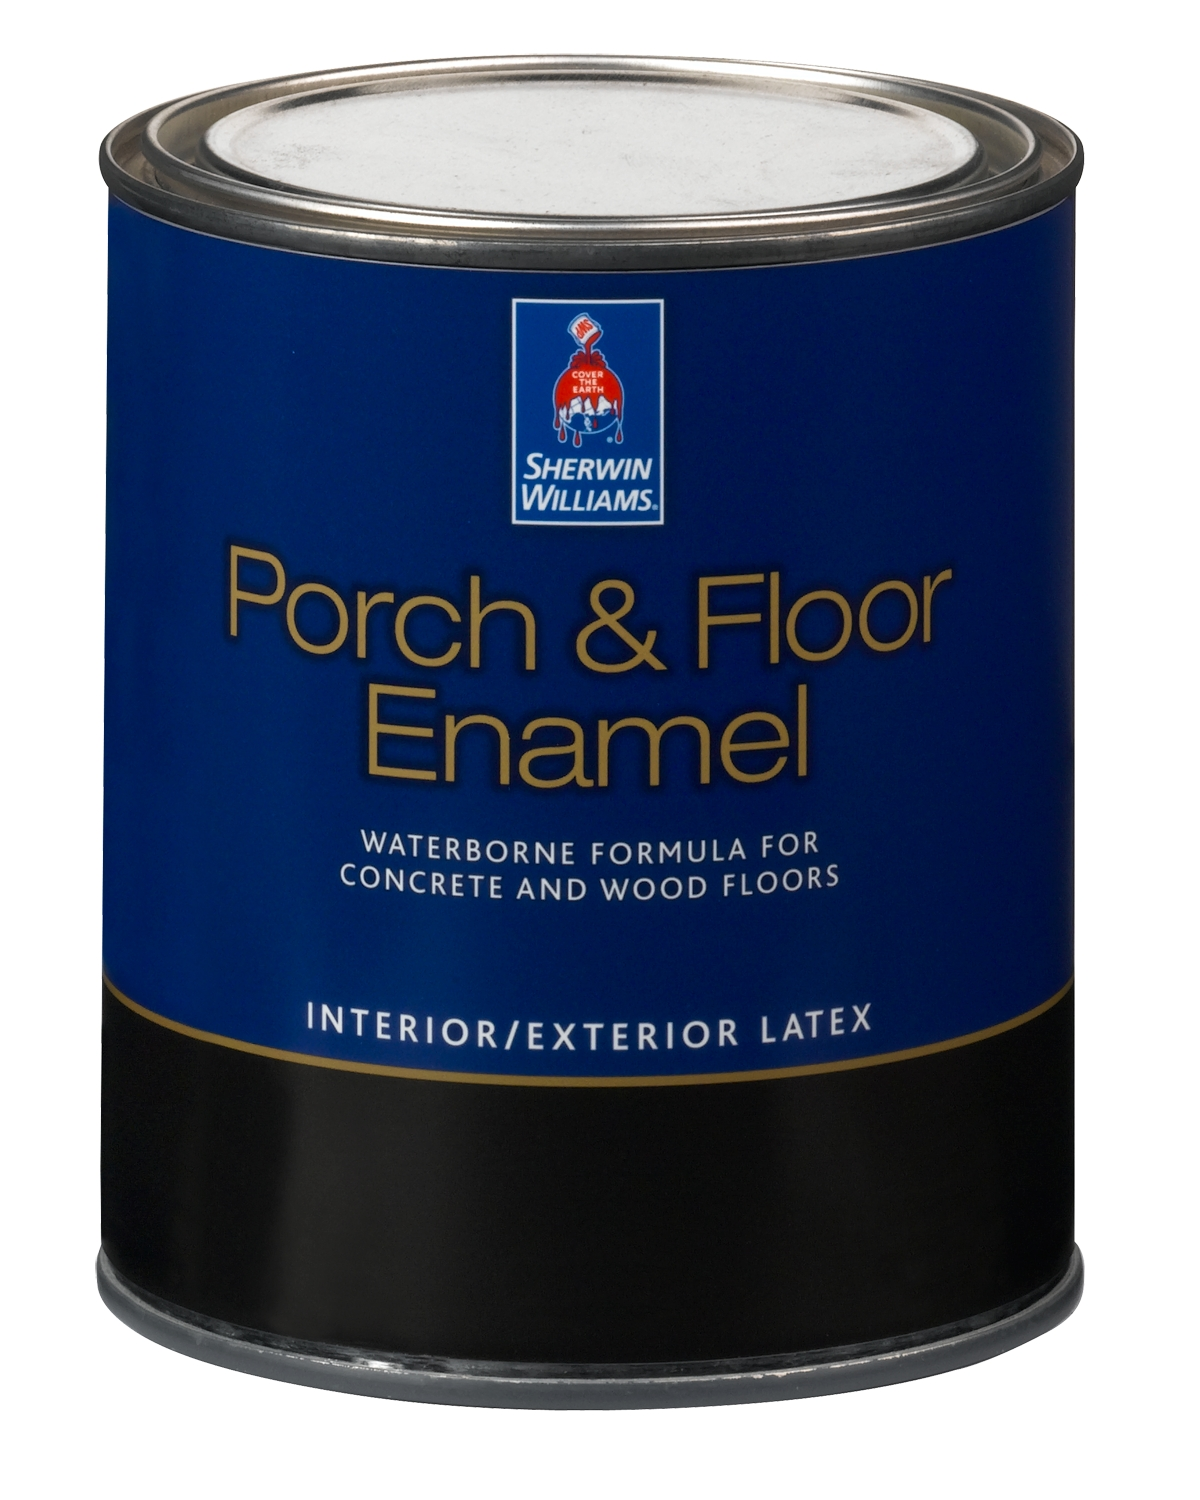 Porch & Floor Enamel